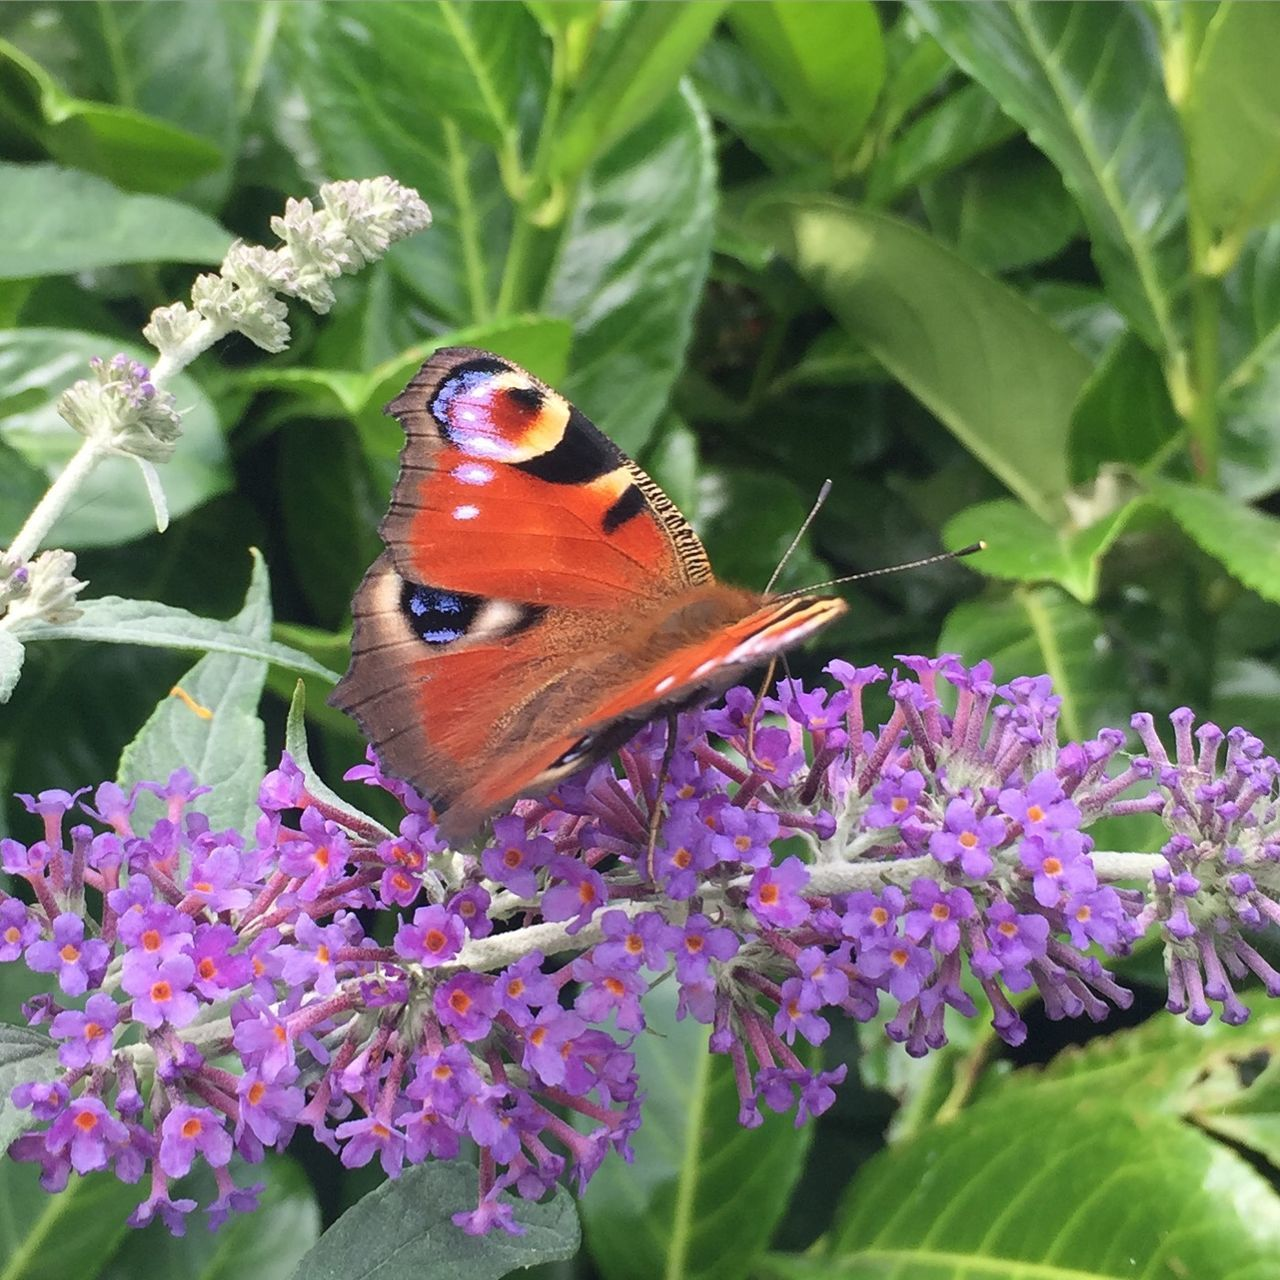 High Angle View Of Butterfly Pollinating On Purple Flowers